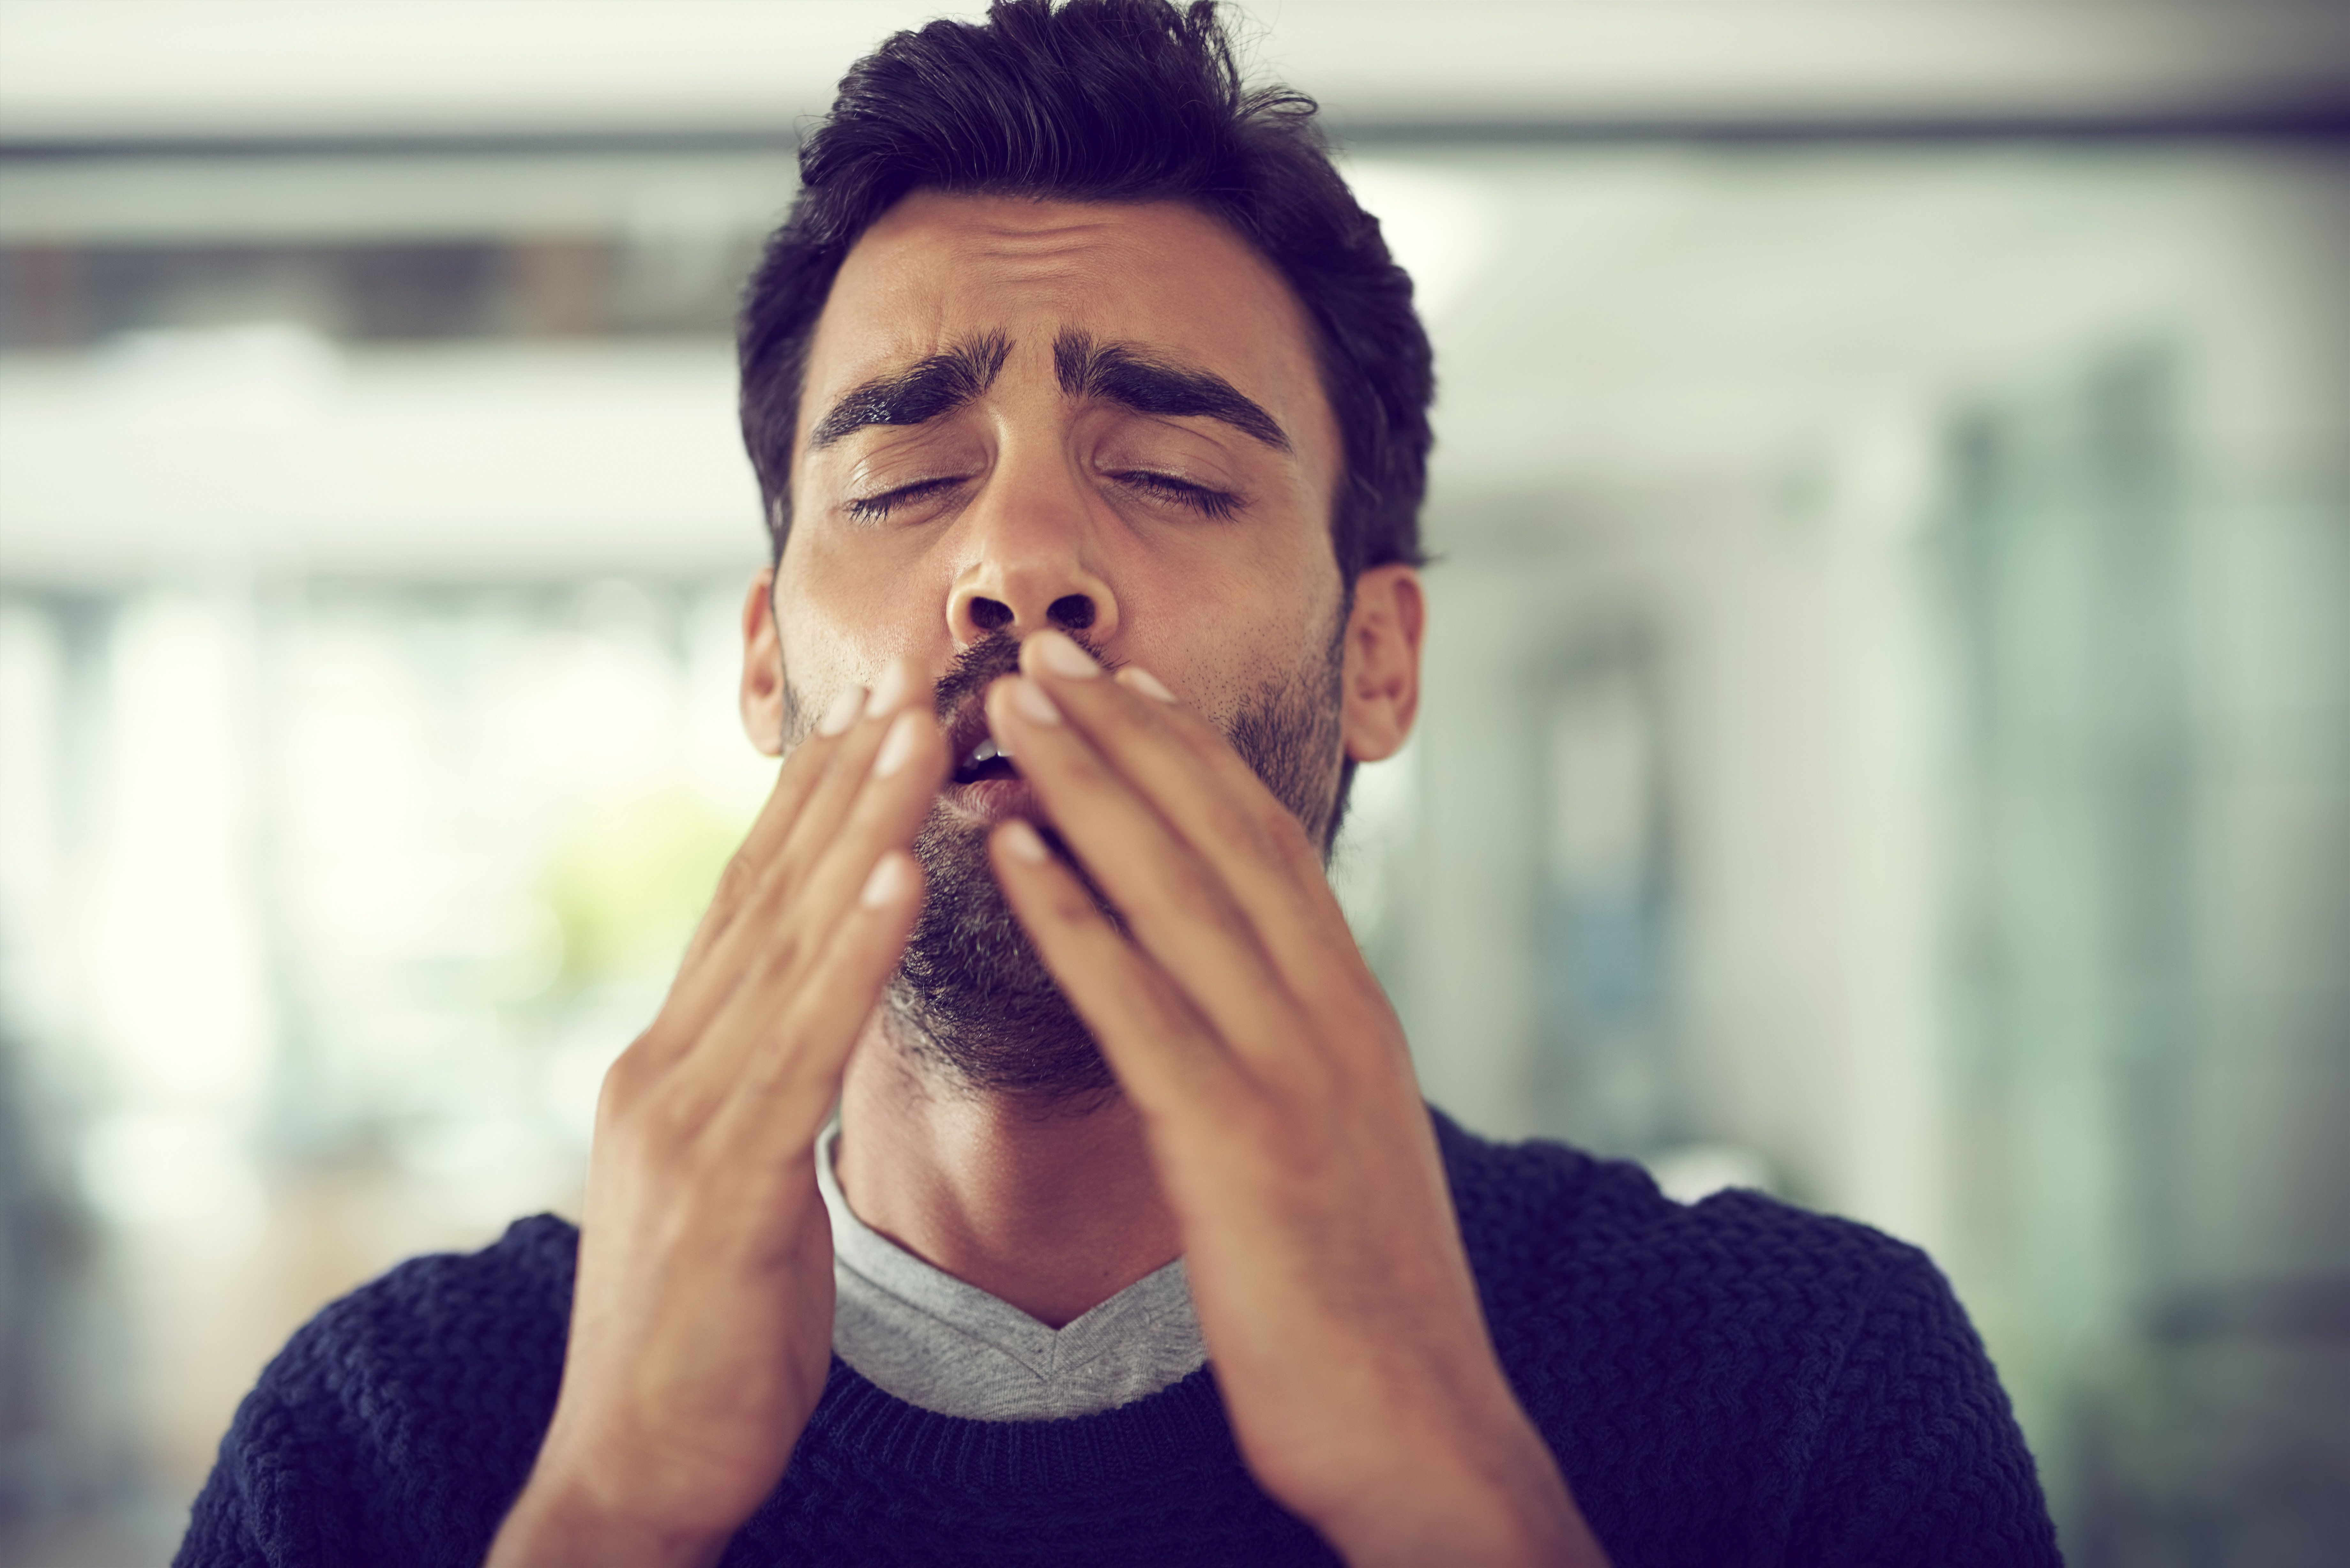 Man hospitalized after holding back sneeze